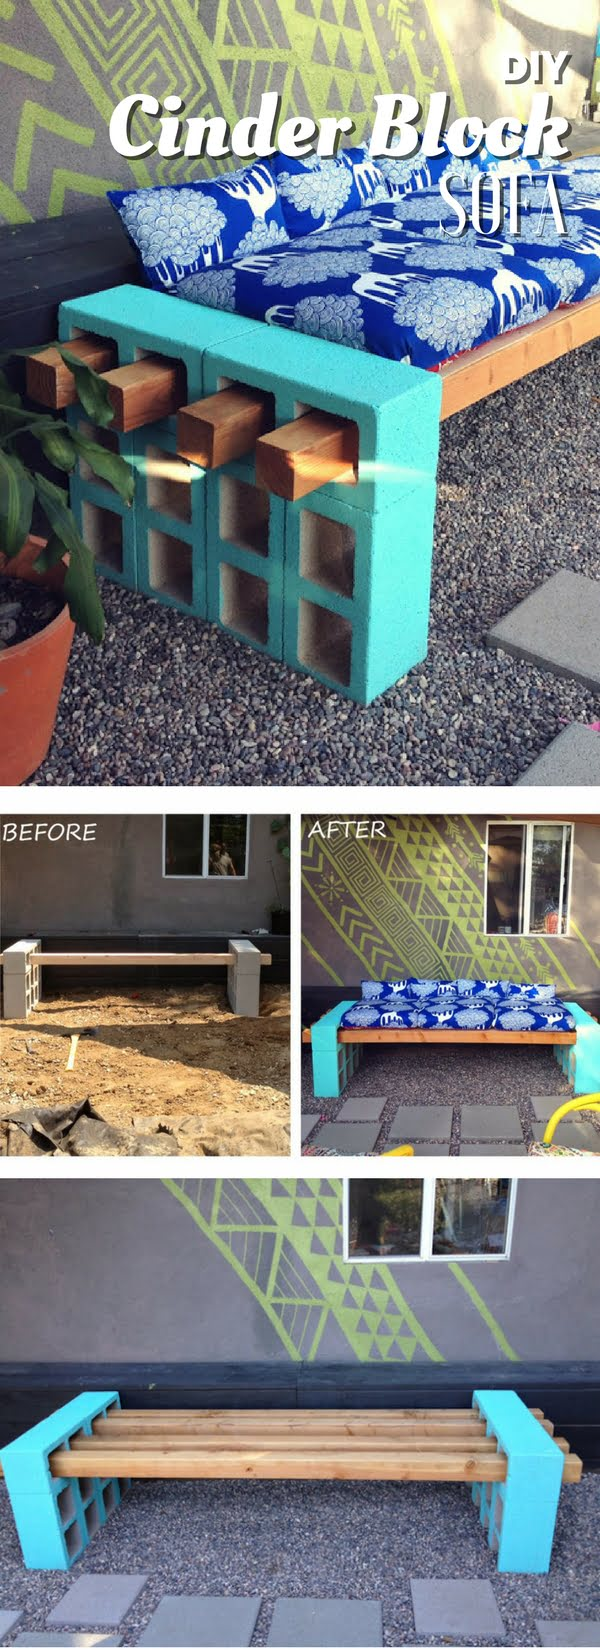 Check out how to build an easy DIY outdoor bench or sofa